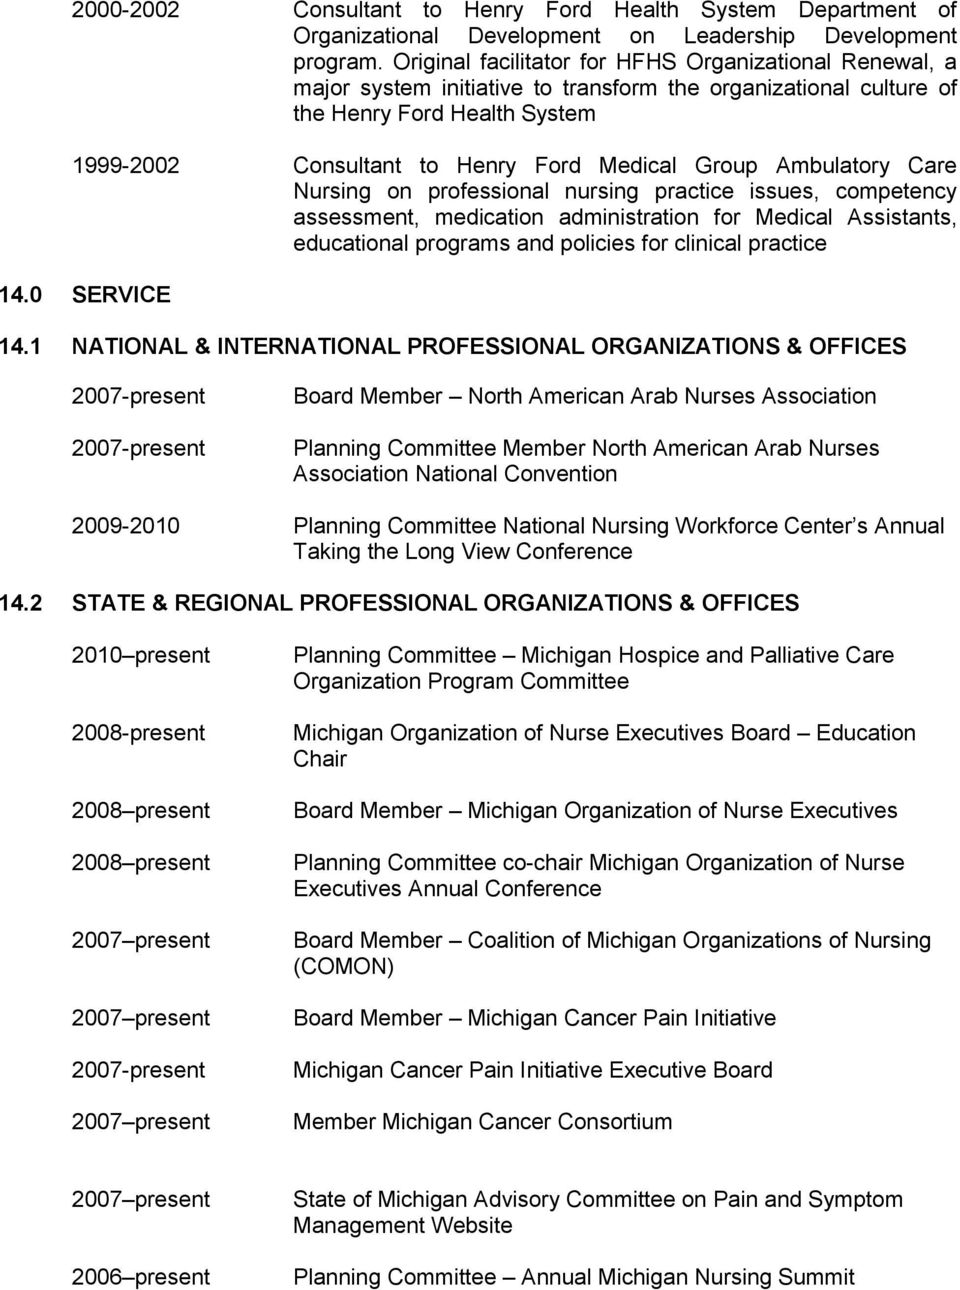 Group Ambulatory Care Nursing on professional nursing practice issues, competency assessment, medication administration for Medical Assistants, educational programs and policies for clinical practice